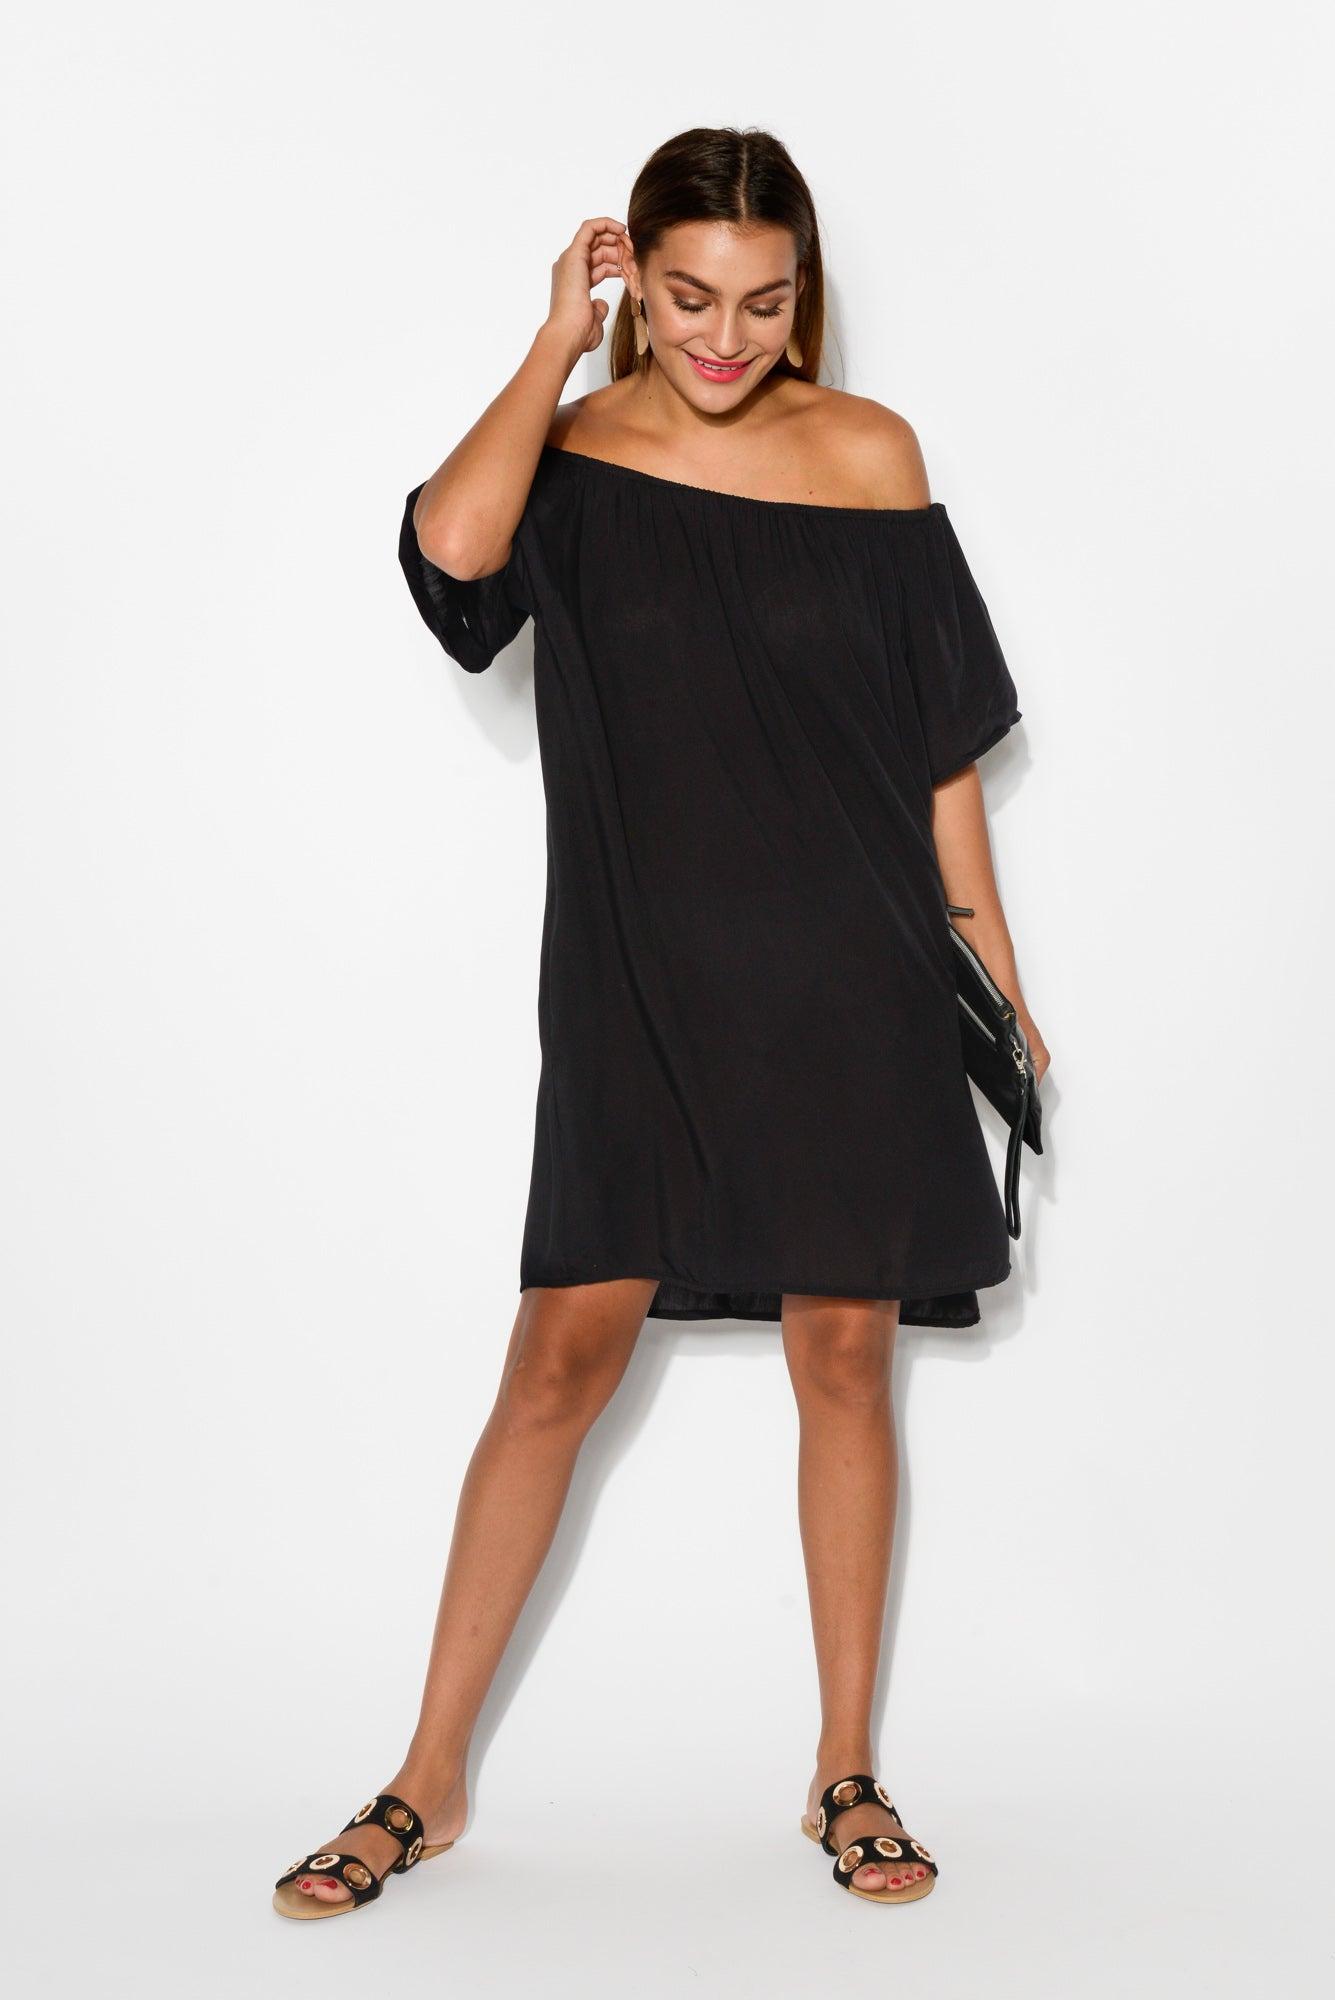 Lauren Black Off Shoulder Dress - Blue Bungalow